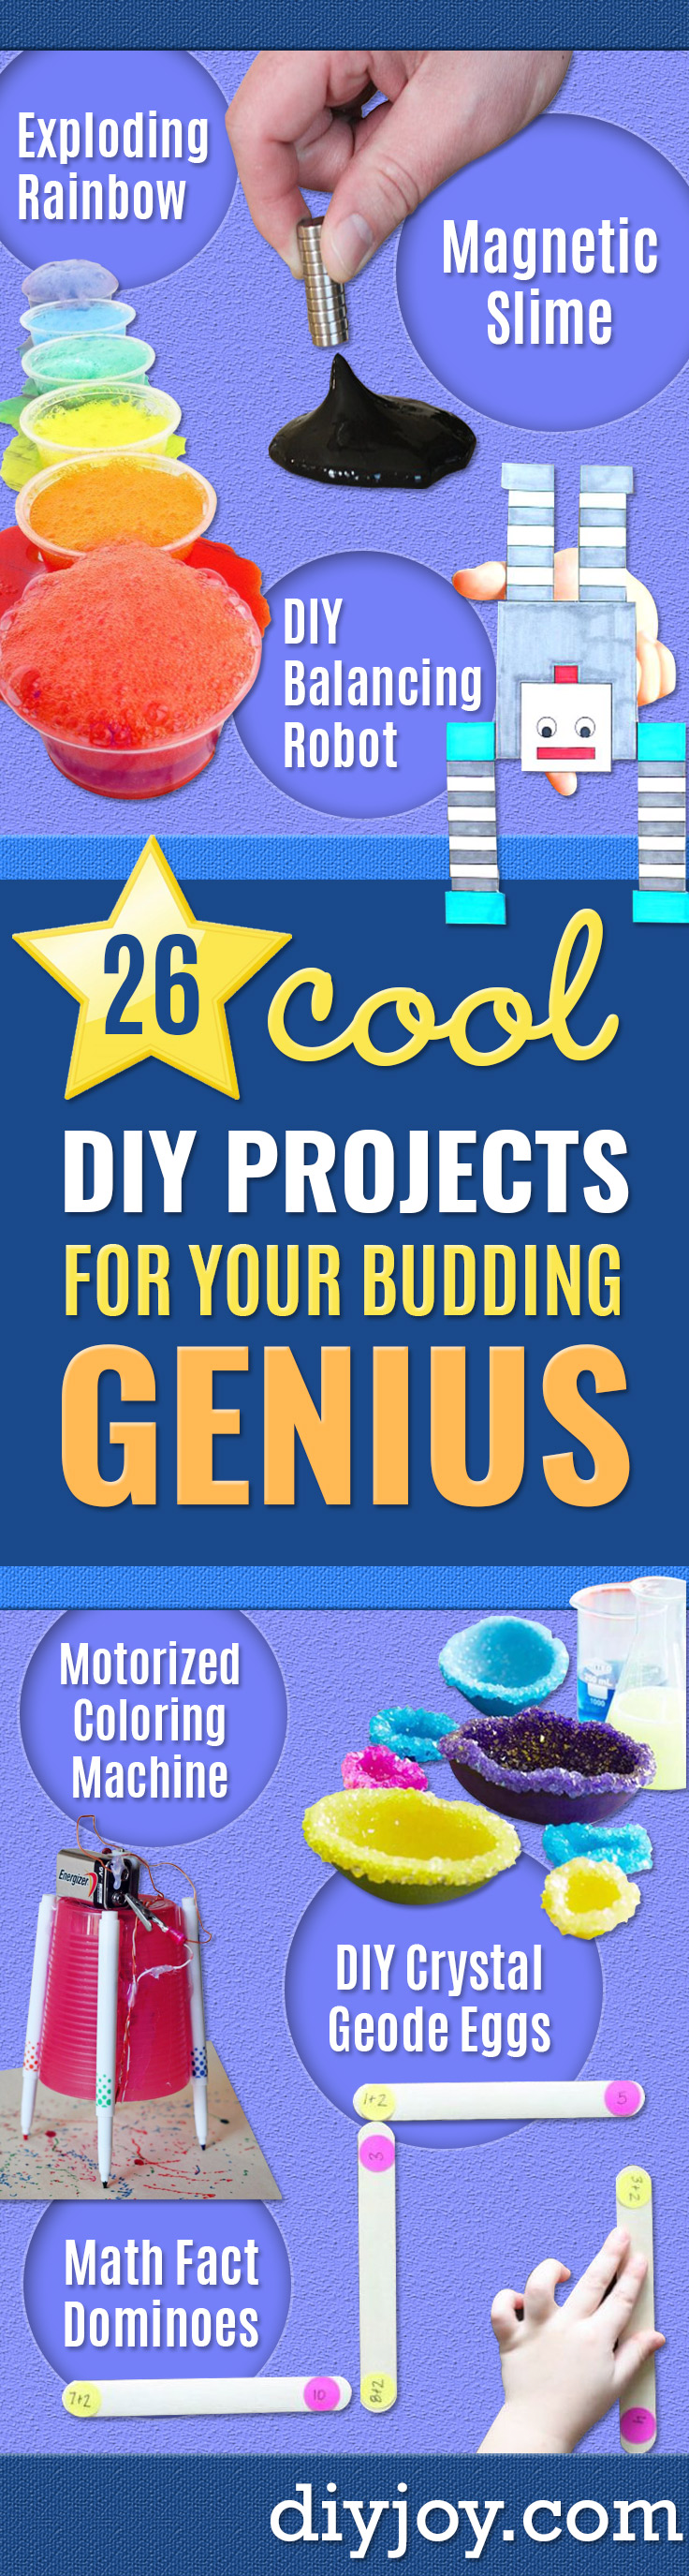 26 cool diy projects for your budding genius diy stem and science ideas for kids and teens fun and easy do it yourself solutioingenieria Gallery